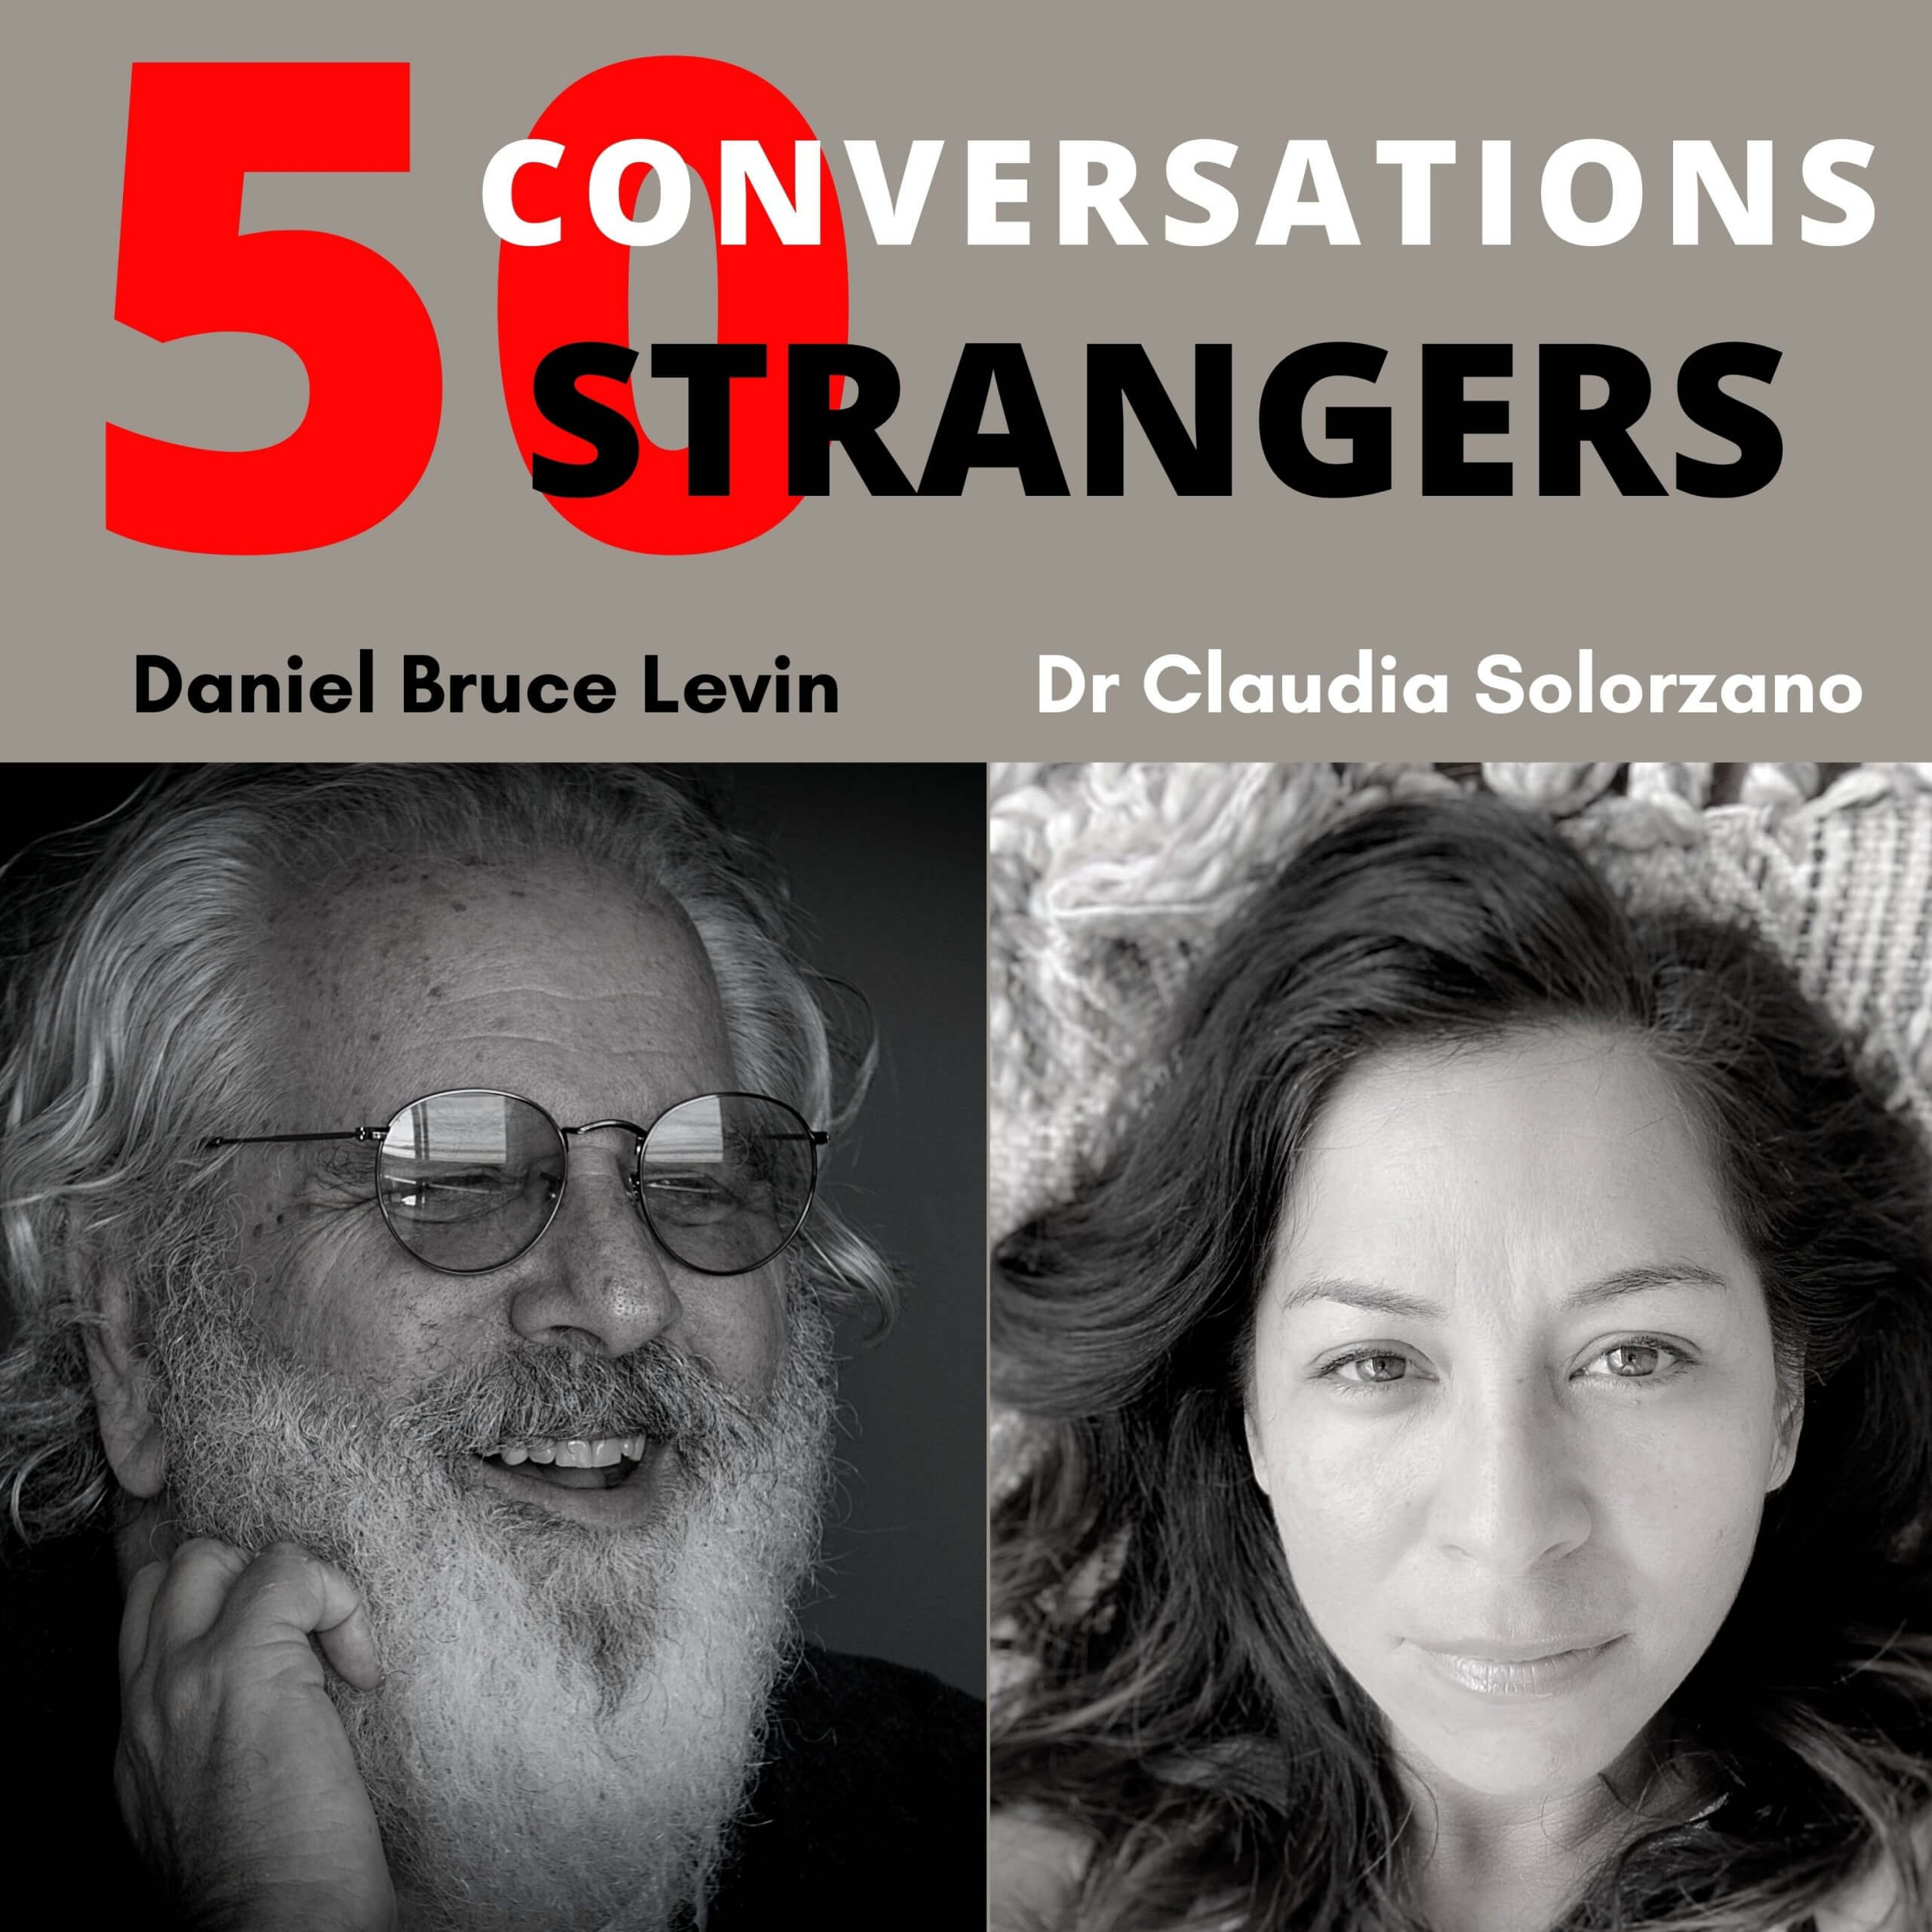 50 Conversations with 50 Strangers with Dr. Claudia Solorzano